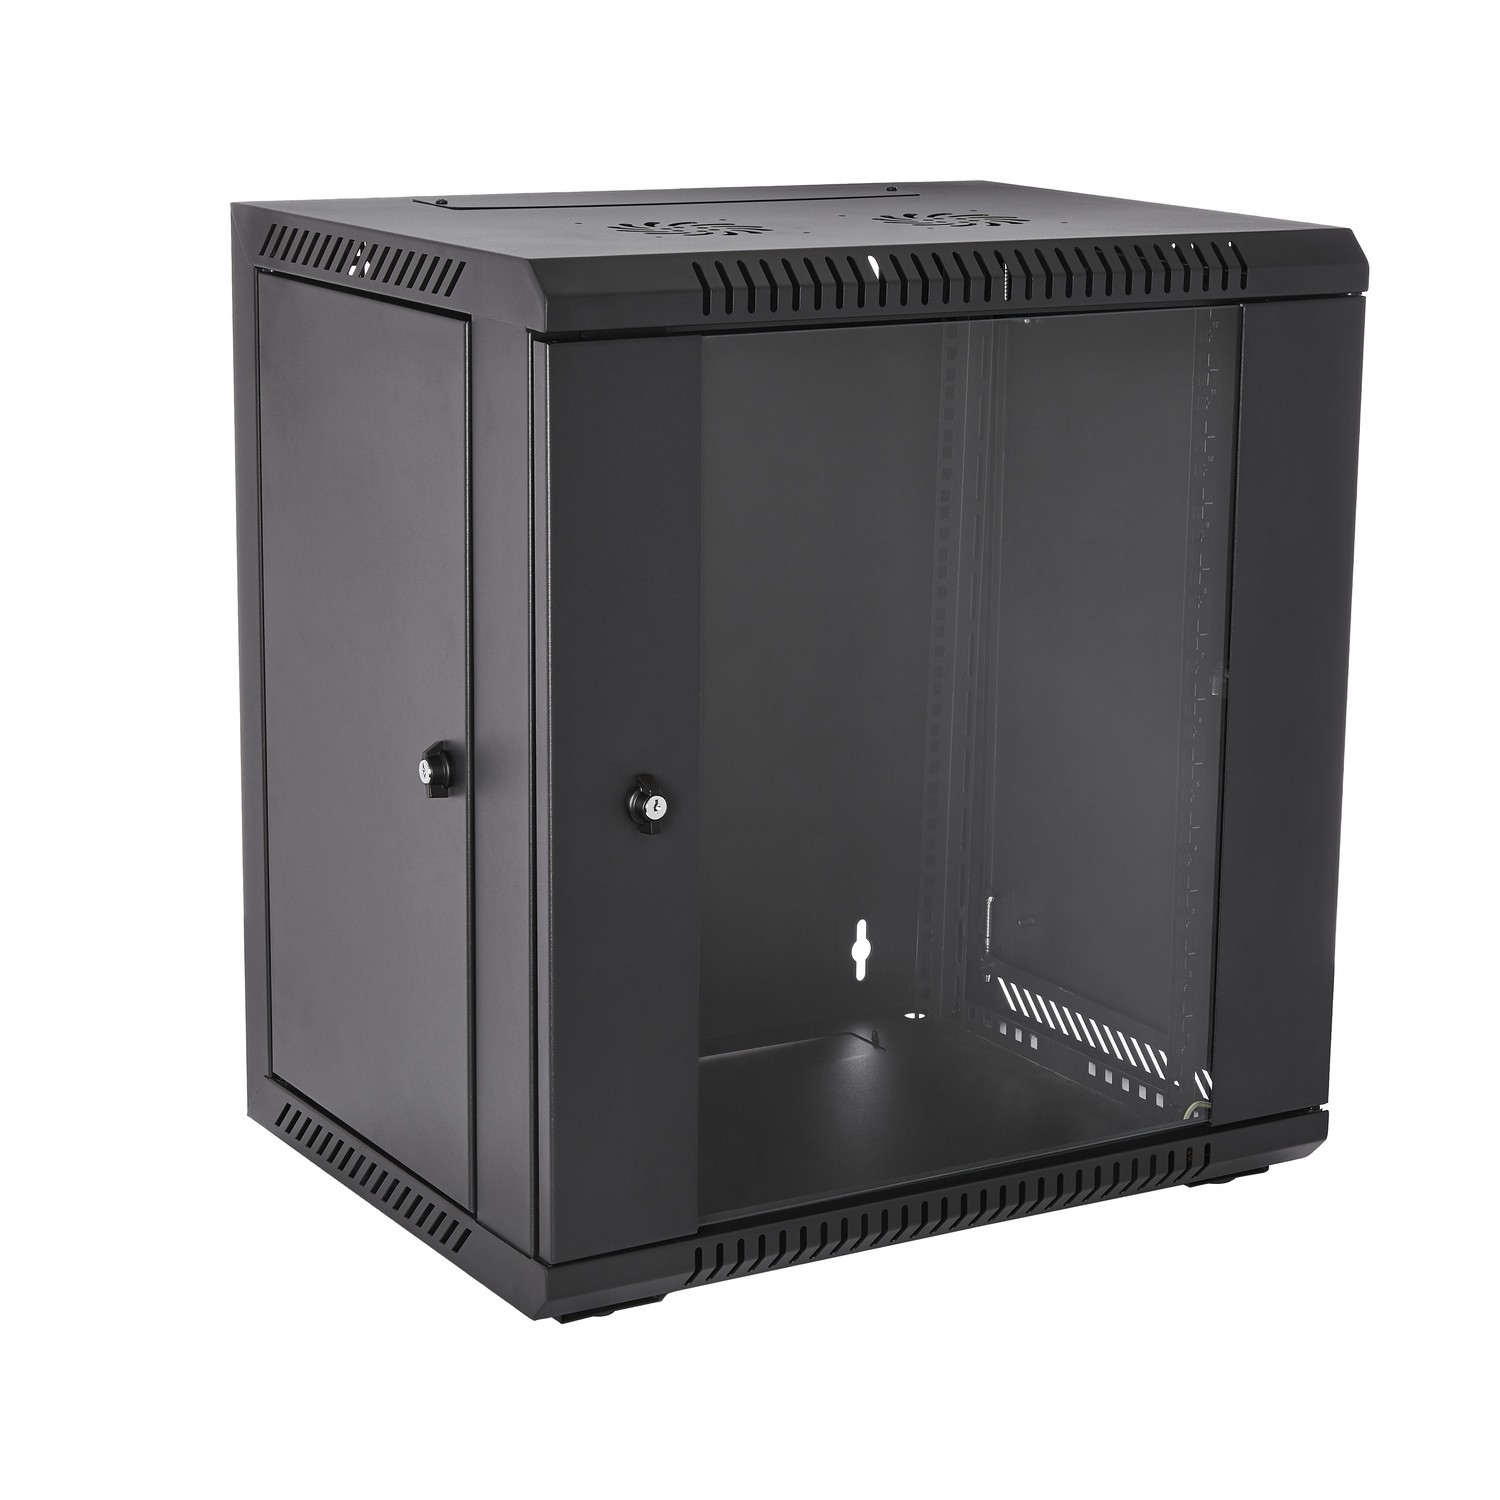 V7 - Racks                       12u Rack Wall Mount Enclosure       Locking Glass Door 450mm            Rmwc12ug450-1e